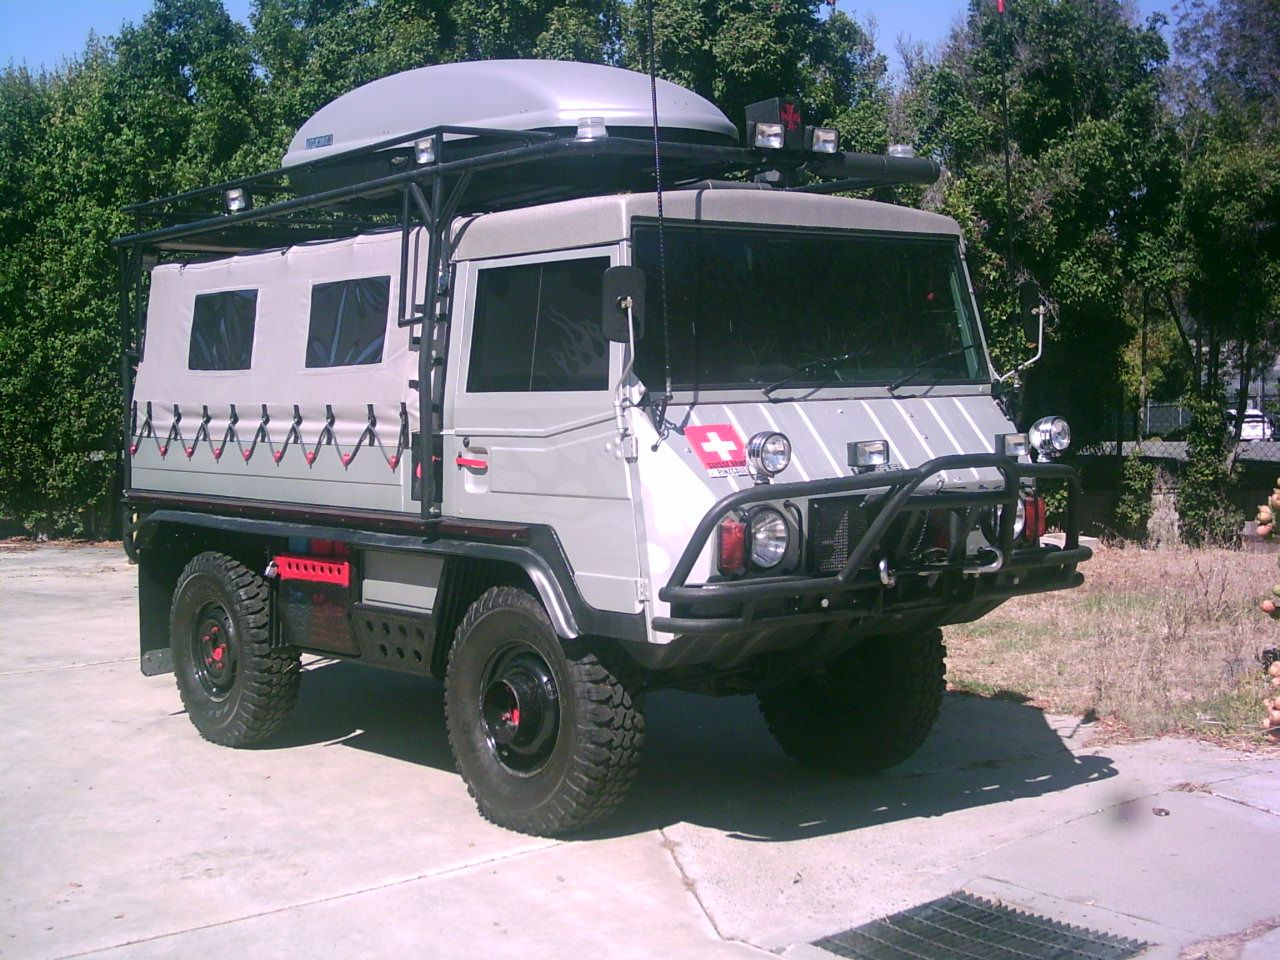 1972 pingauer 710m for sale overland vehicles overland truck expedition truck suv 4x4. Black Bedroom Furniture Sets. Home Design Ideas